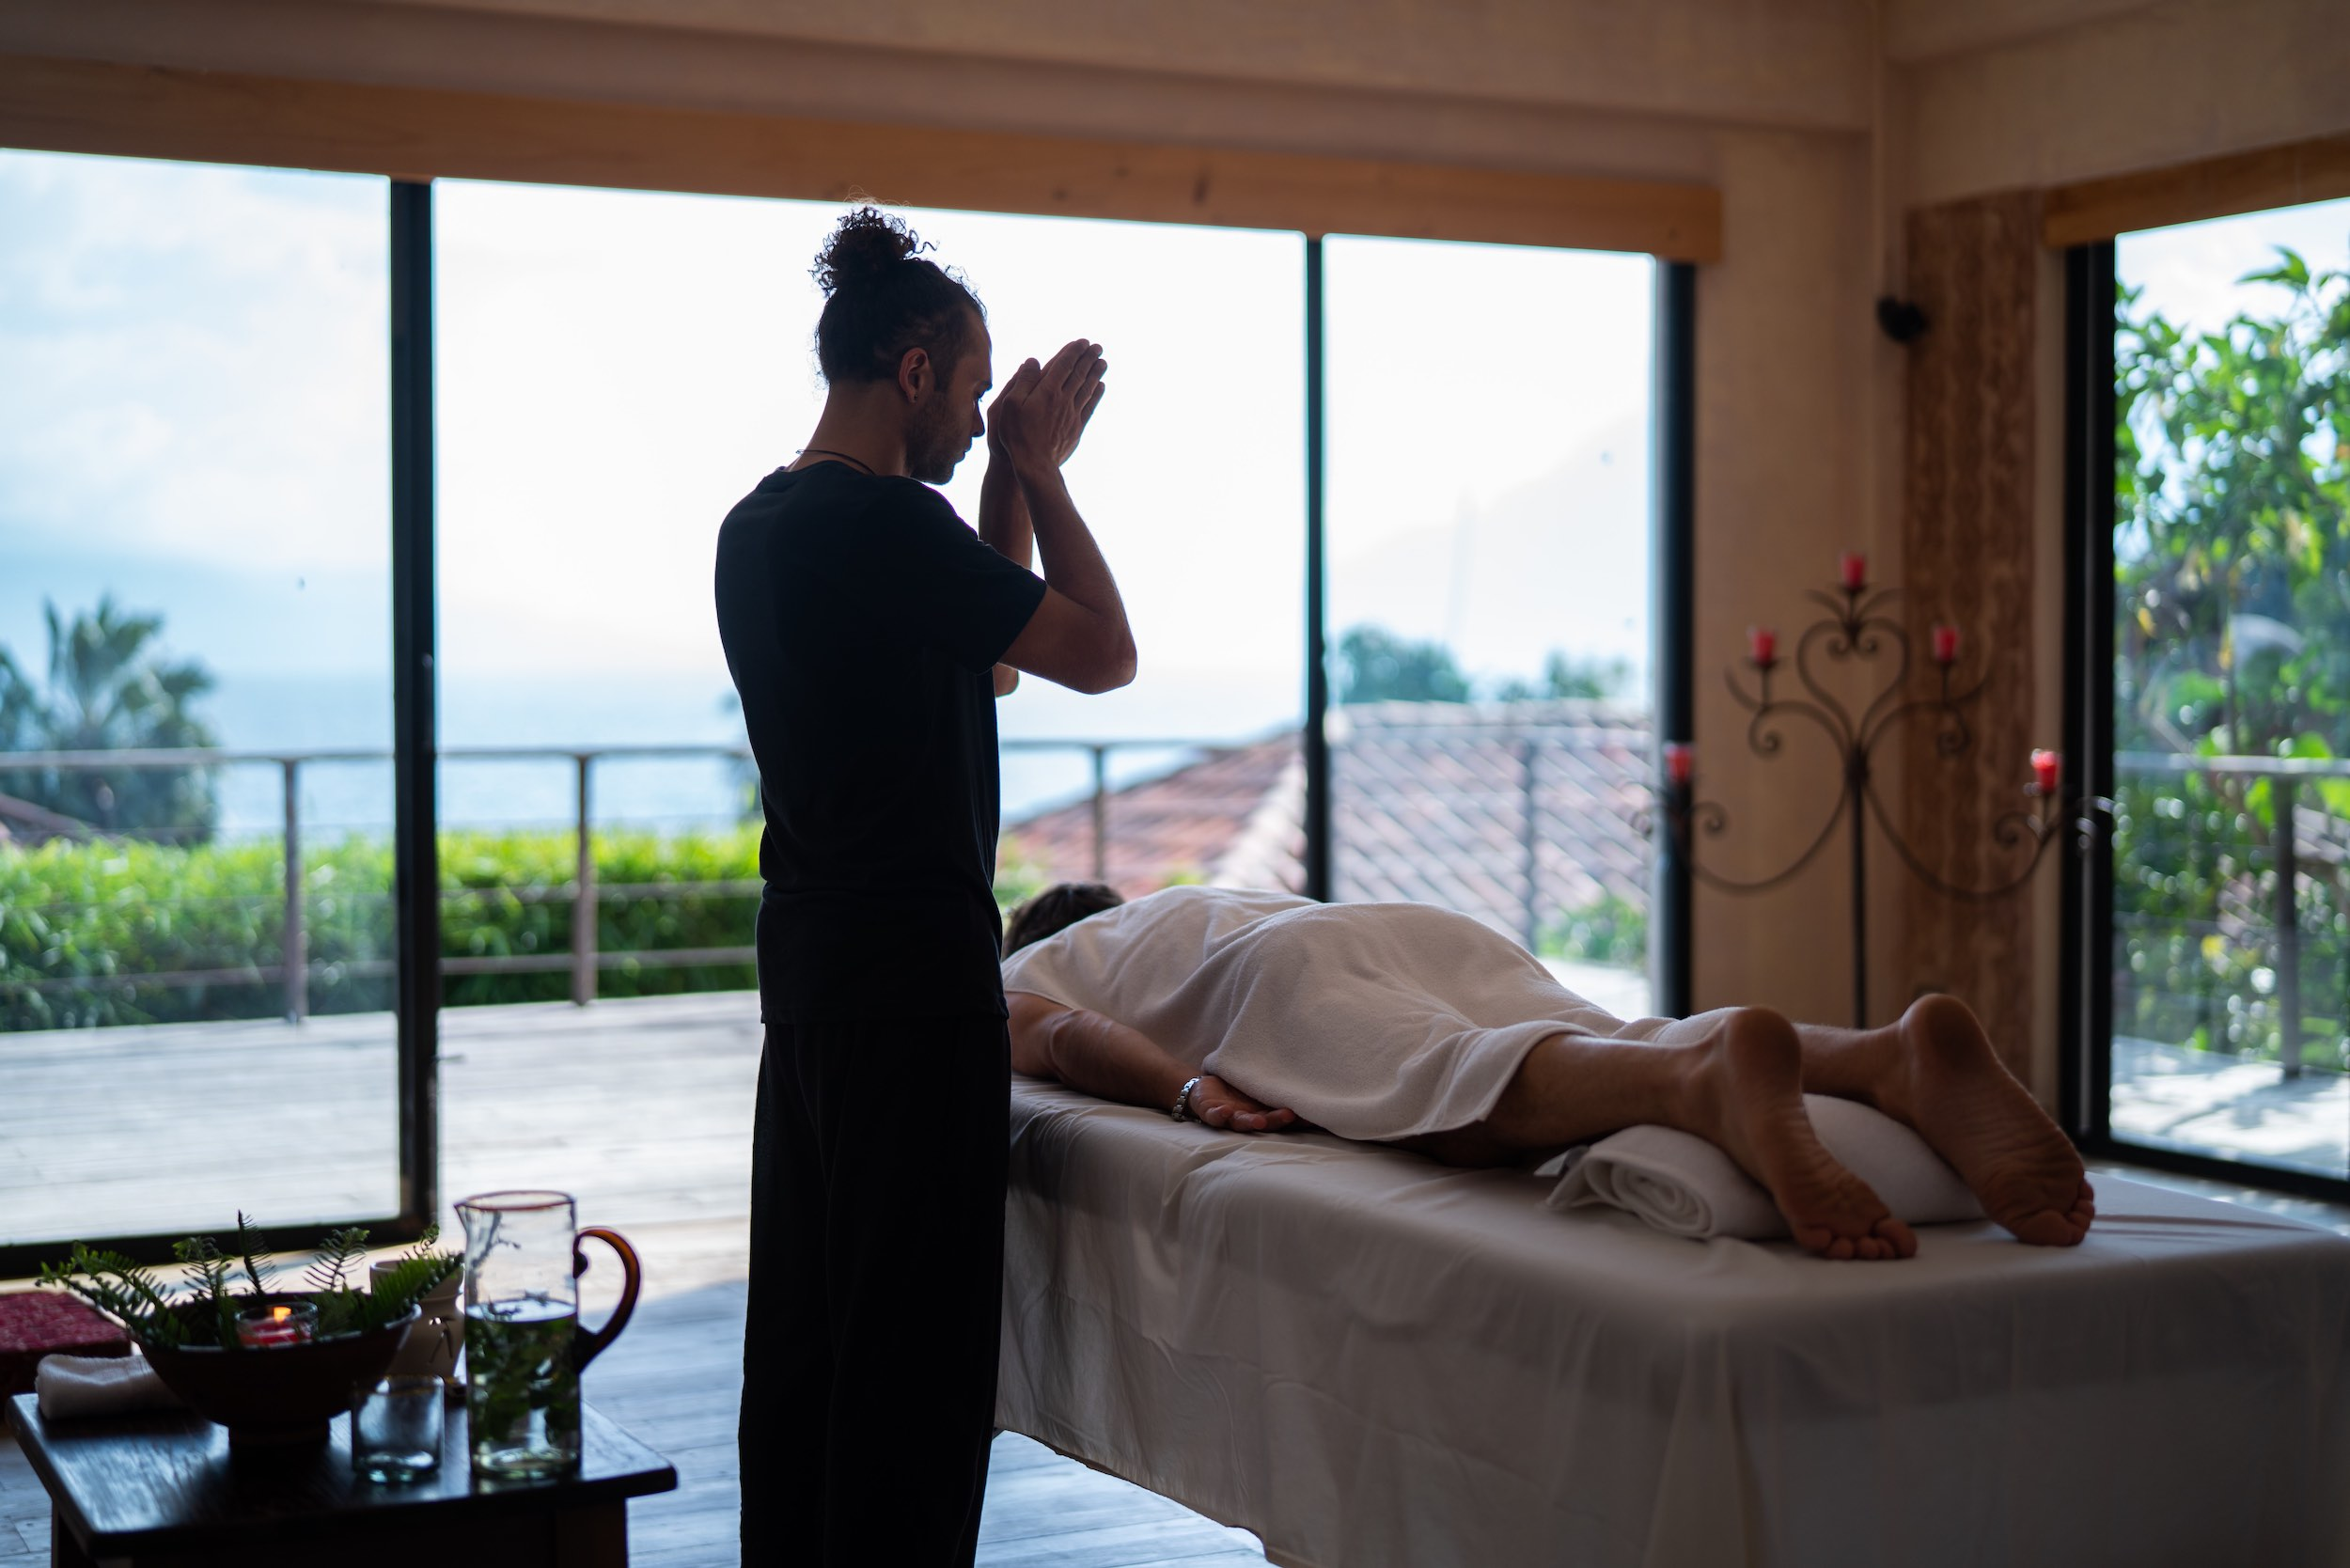 WELLNESS - PRANA WELLNESS offer a selective menu of treatments.Relax with our signature rejuvenating natural oil massage based on properties of Doterra essential oils.After a day of adventures or an exhausting long travel, our massage therapies can restore tired muscles and put the mind at ease.Private yoga sessions with expert trainers can be arranged upon request.